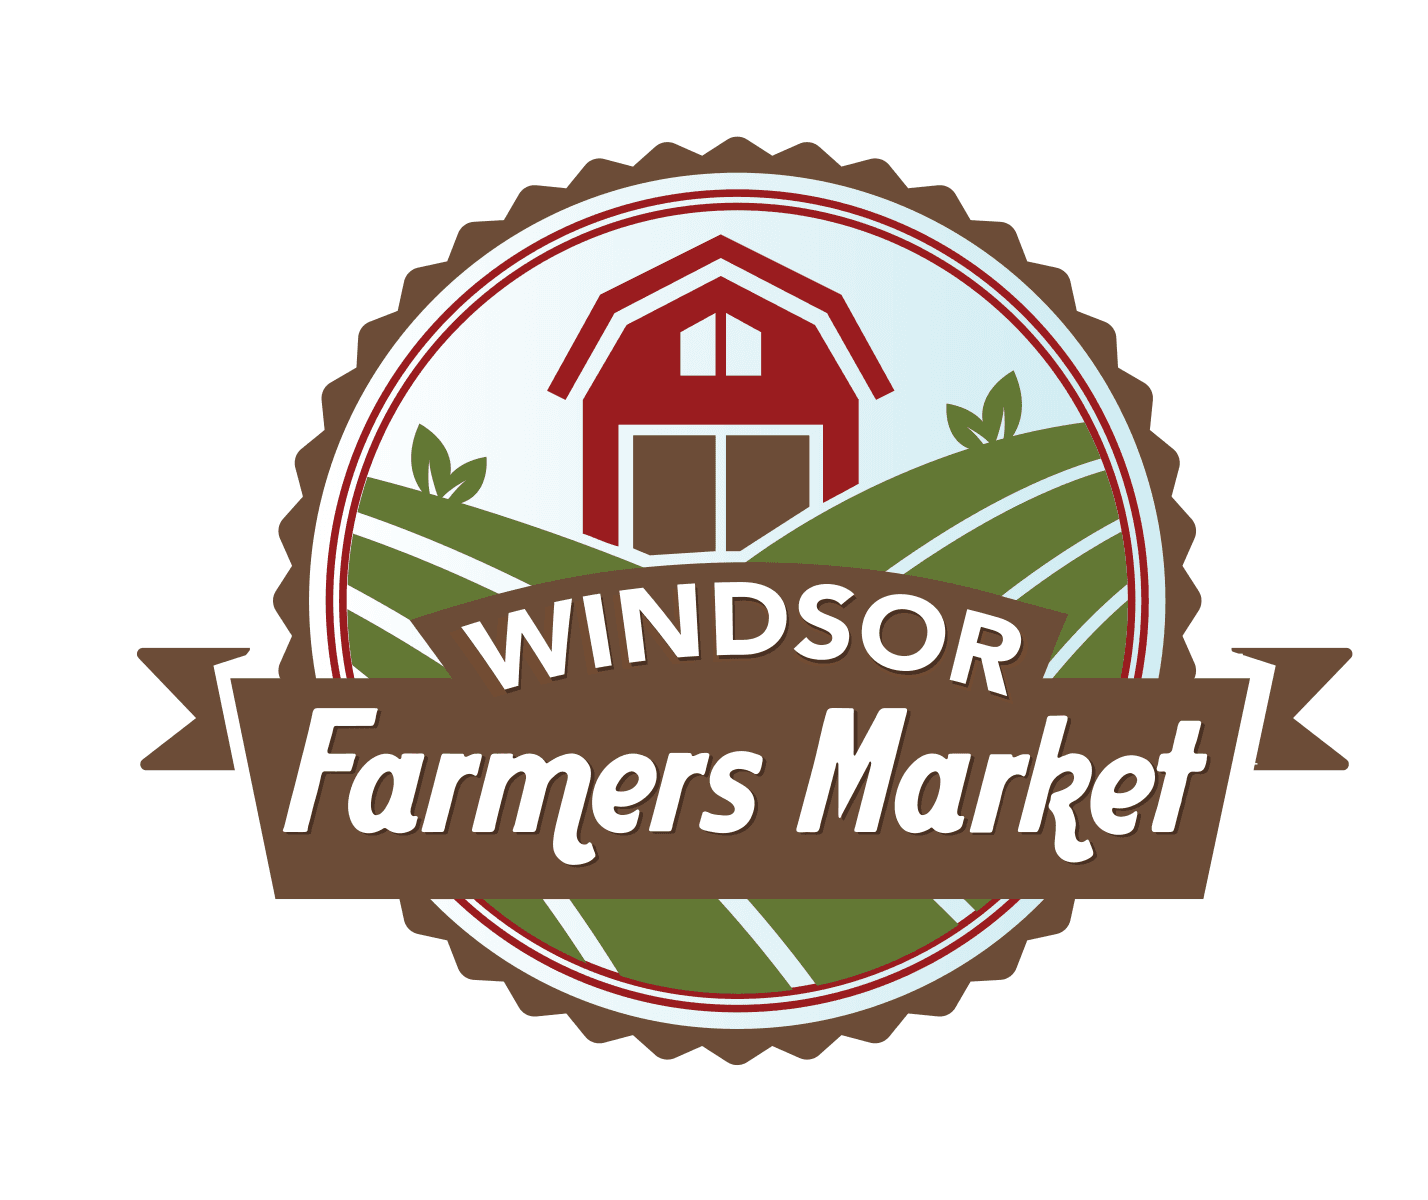 Windsor Farmers Market